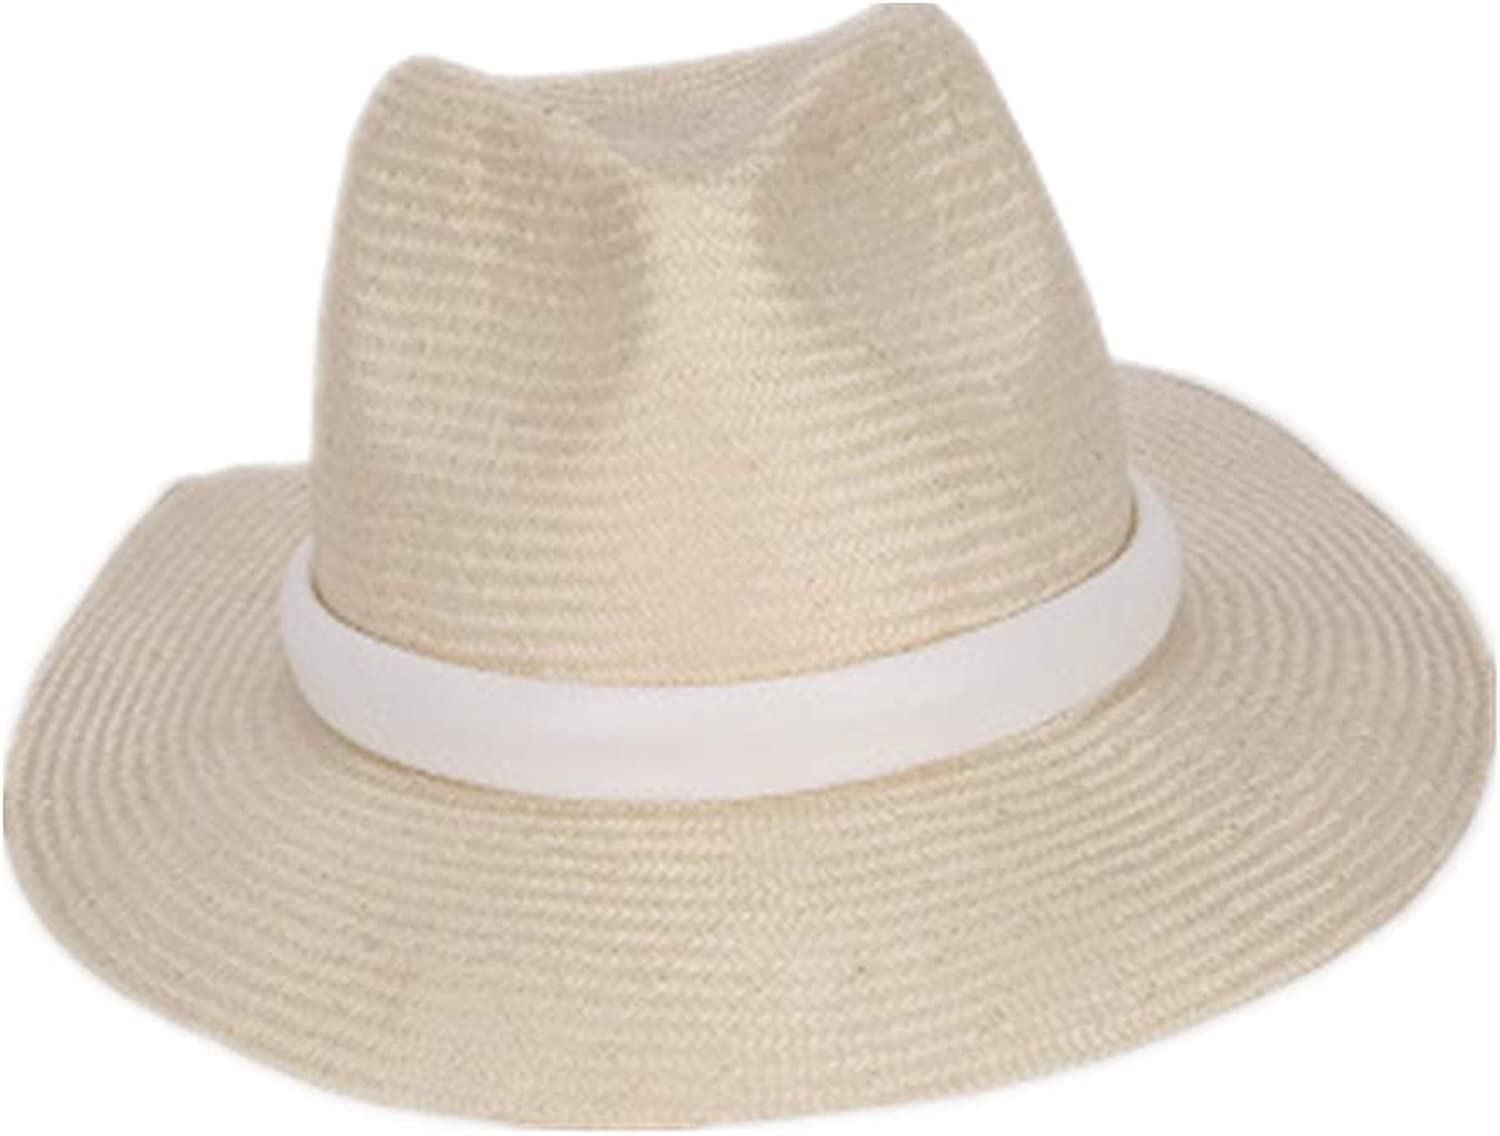 Lady Boater Sun Caps, Straw hat Women's hat Summer Sun Visor Cool Outdoor hat